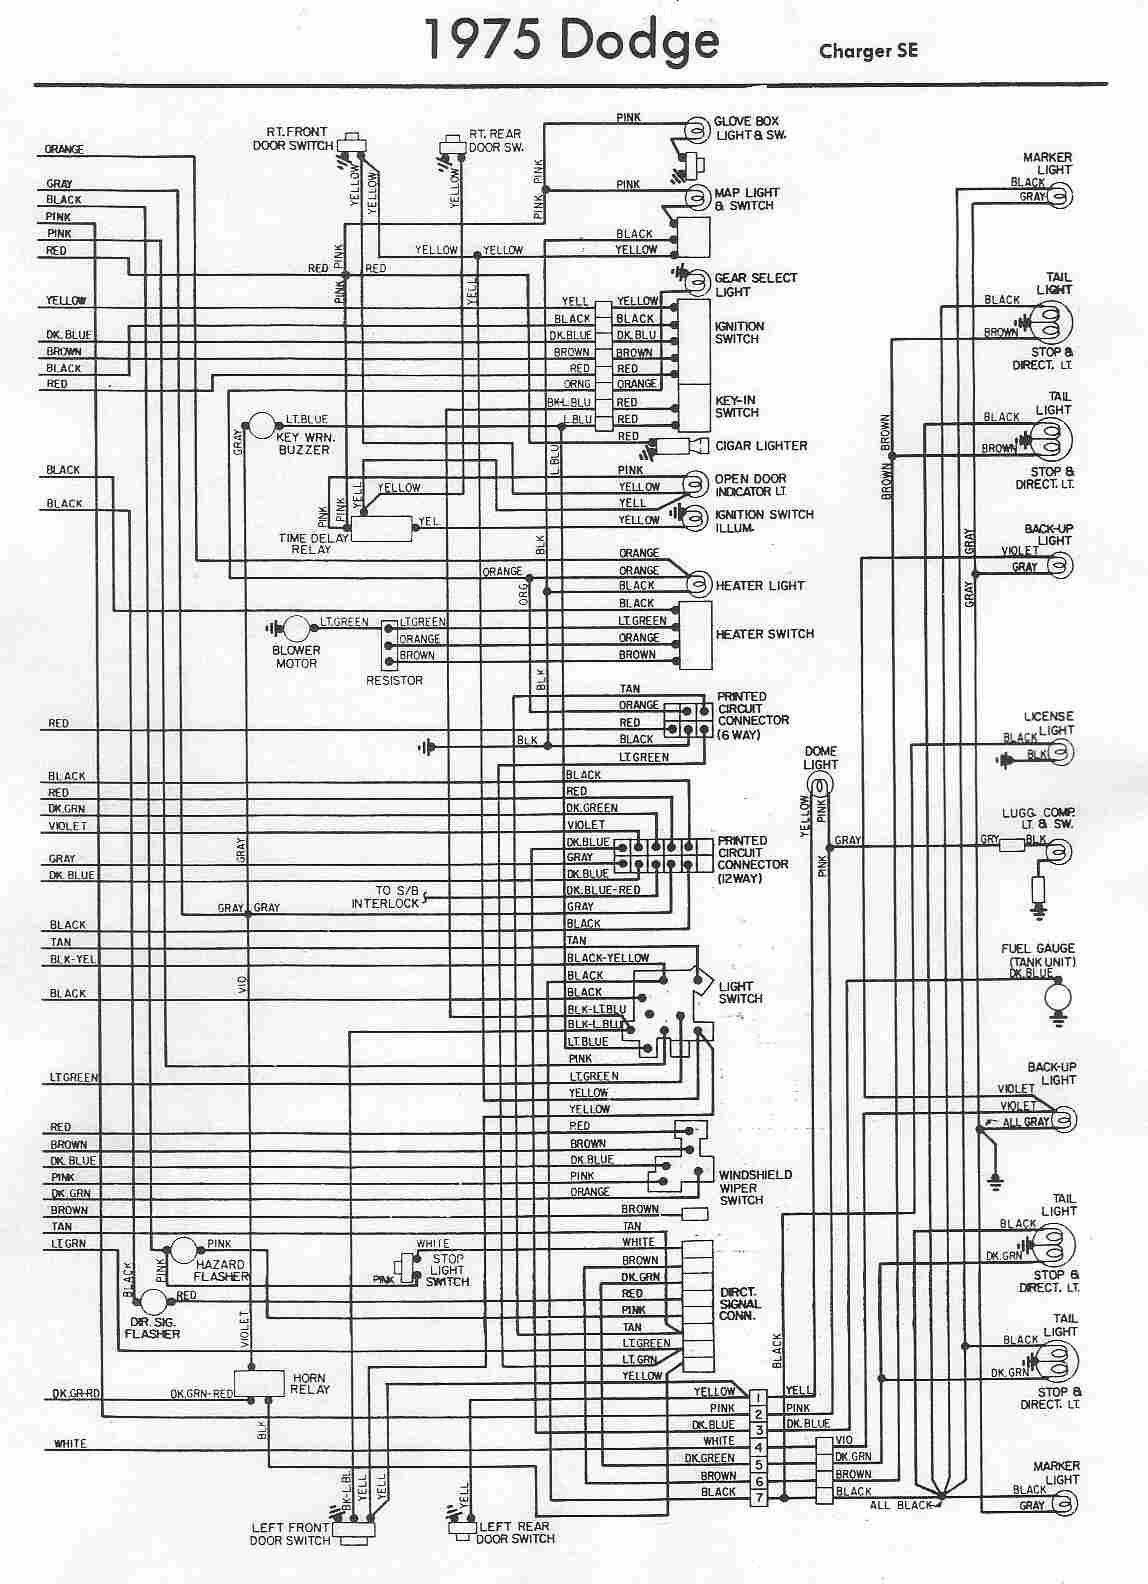 1978 dodge truck ignition wiring diagram 99 jetta radio car manuals diagrams pdf fault codes download